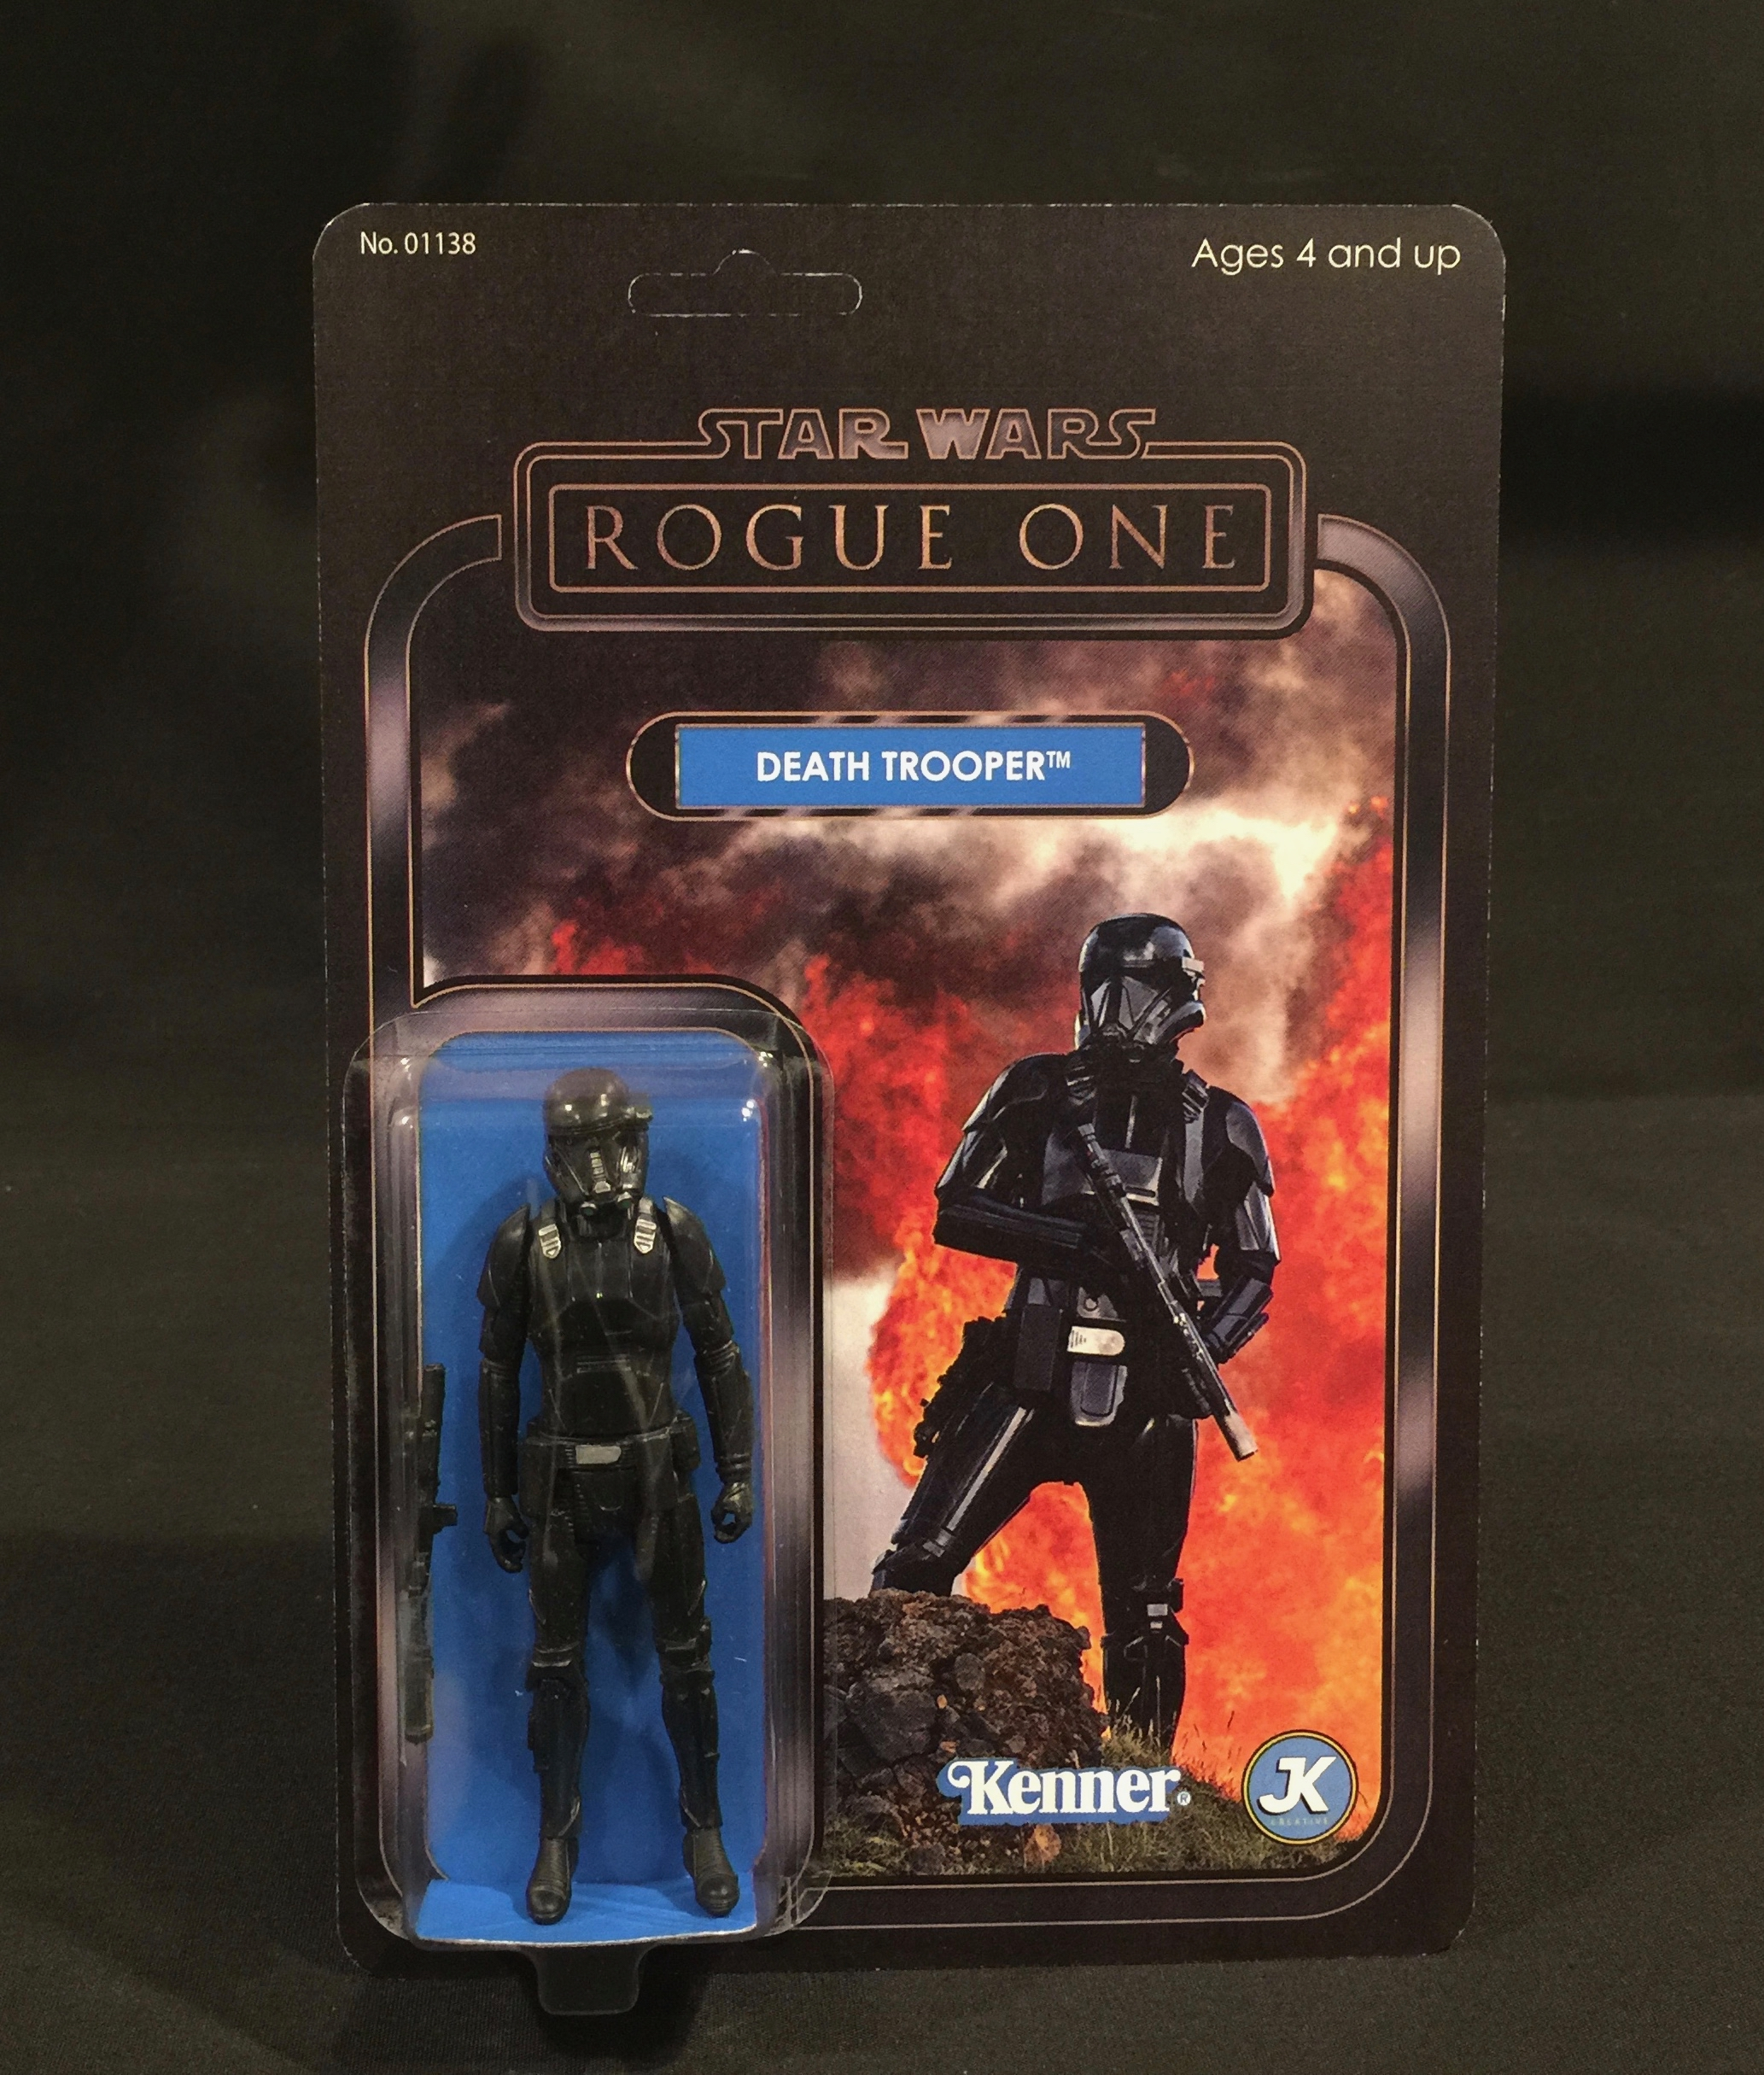 Death Trooper #1 - Rogue One